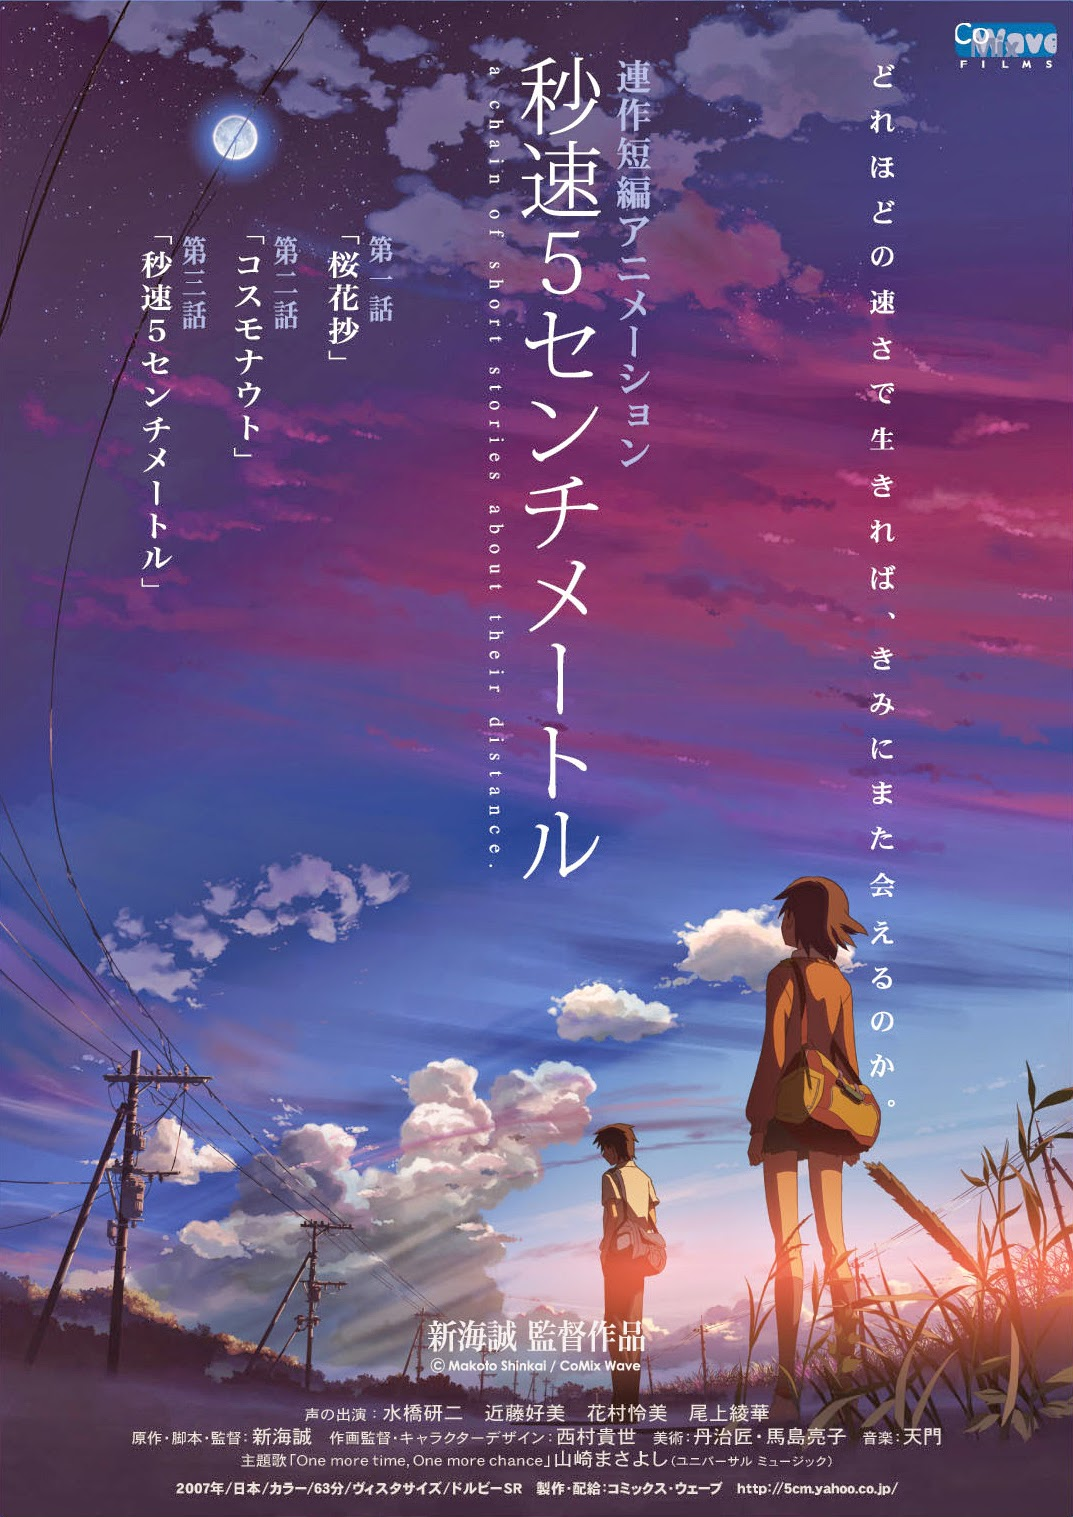 Anime 5 centimeters per second